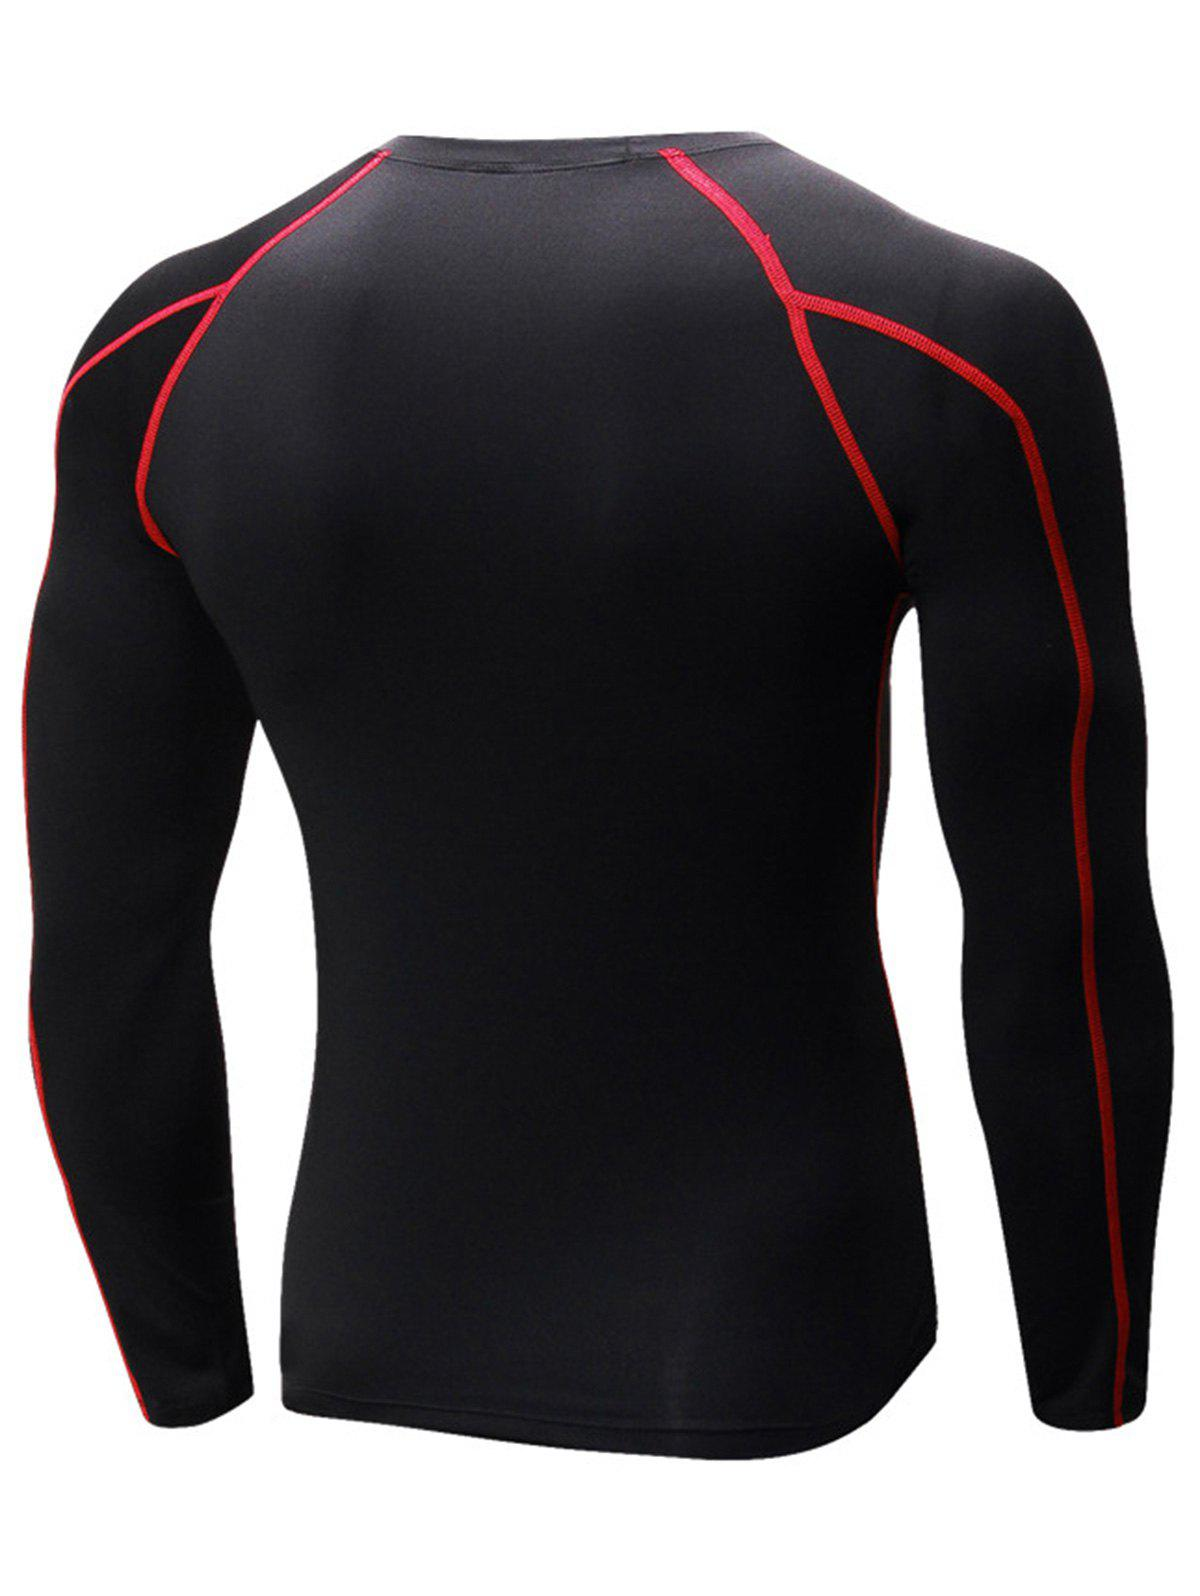 Stretchy Quick Dry Suture Long Sleeve T-shirt - BLACK/RED 2XL